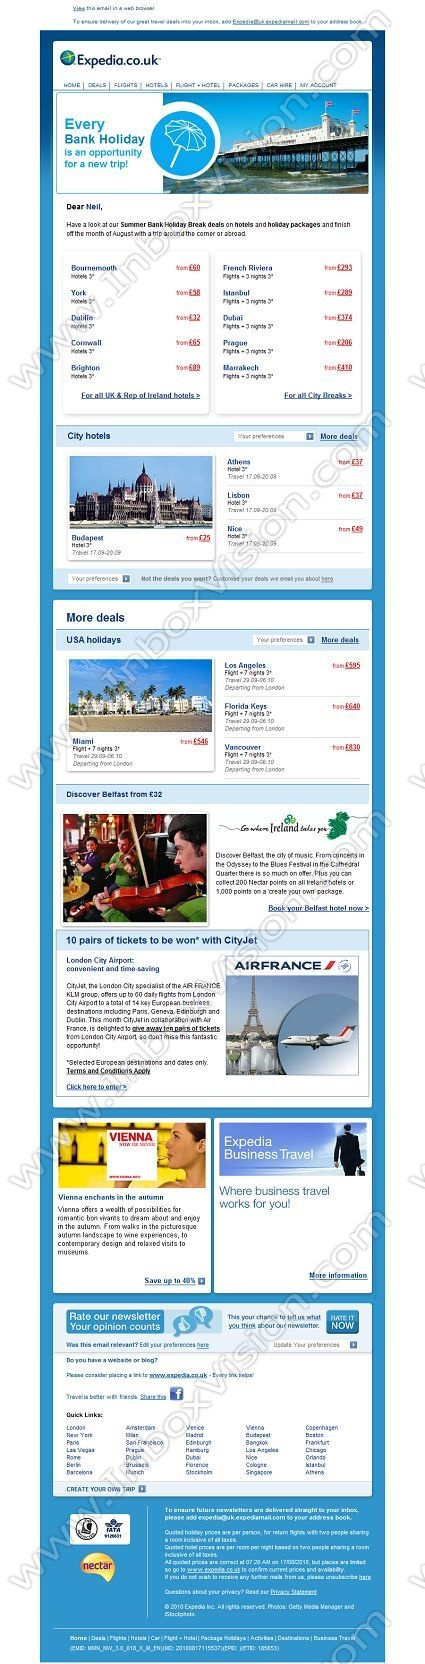 Company:  Expedia.co.uk  Subject:  Our Top Bank holiday deals            INBOXVISION is a global database and email gallery of 1.5 million B2C and B2B promotional emails and newsletter templates, providing email design ideas and email marketing intelligence http://www.inboxvision.com/blog